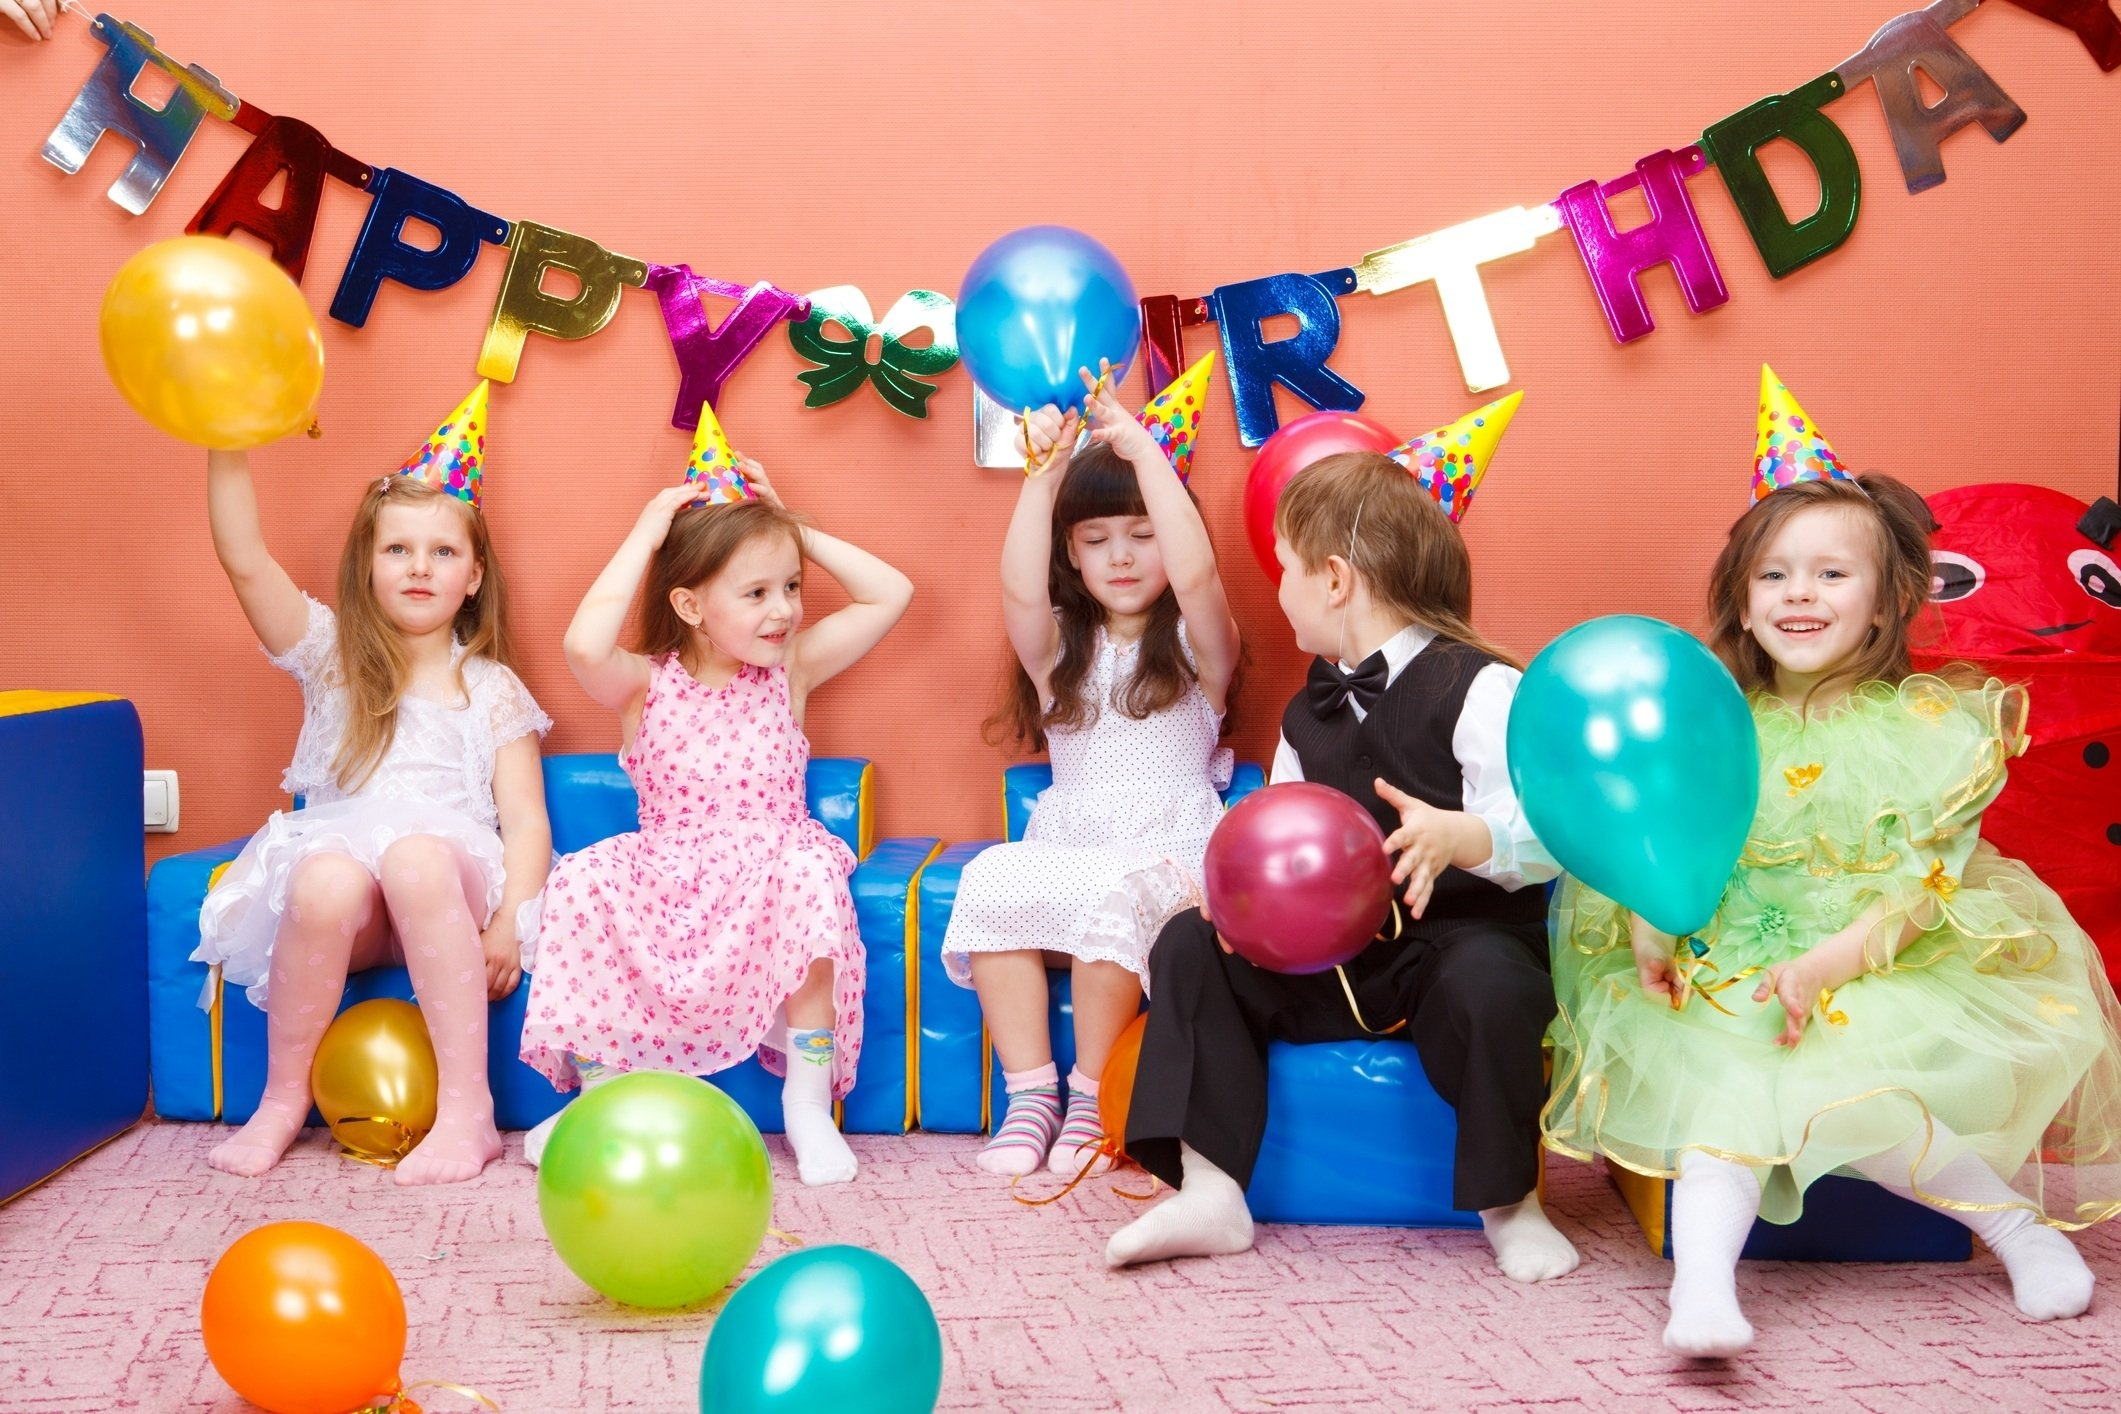 10 Most Popular 12Th Birthday Party Ideas For Girls 45 awesome 11 12 year old birthday party ideas birthday inspire 9 2021